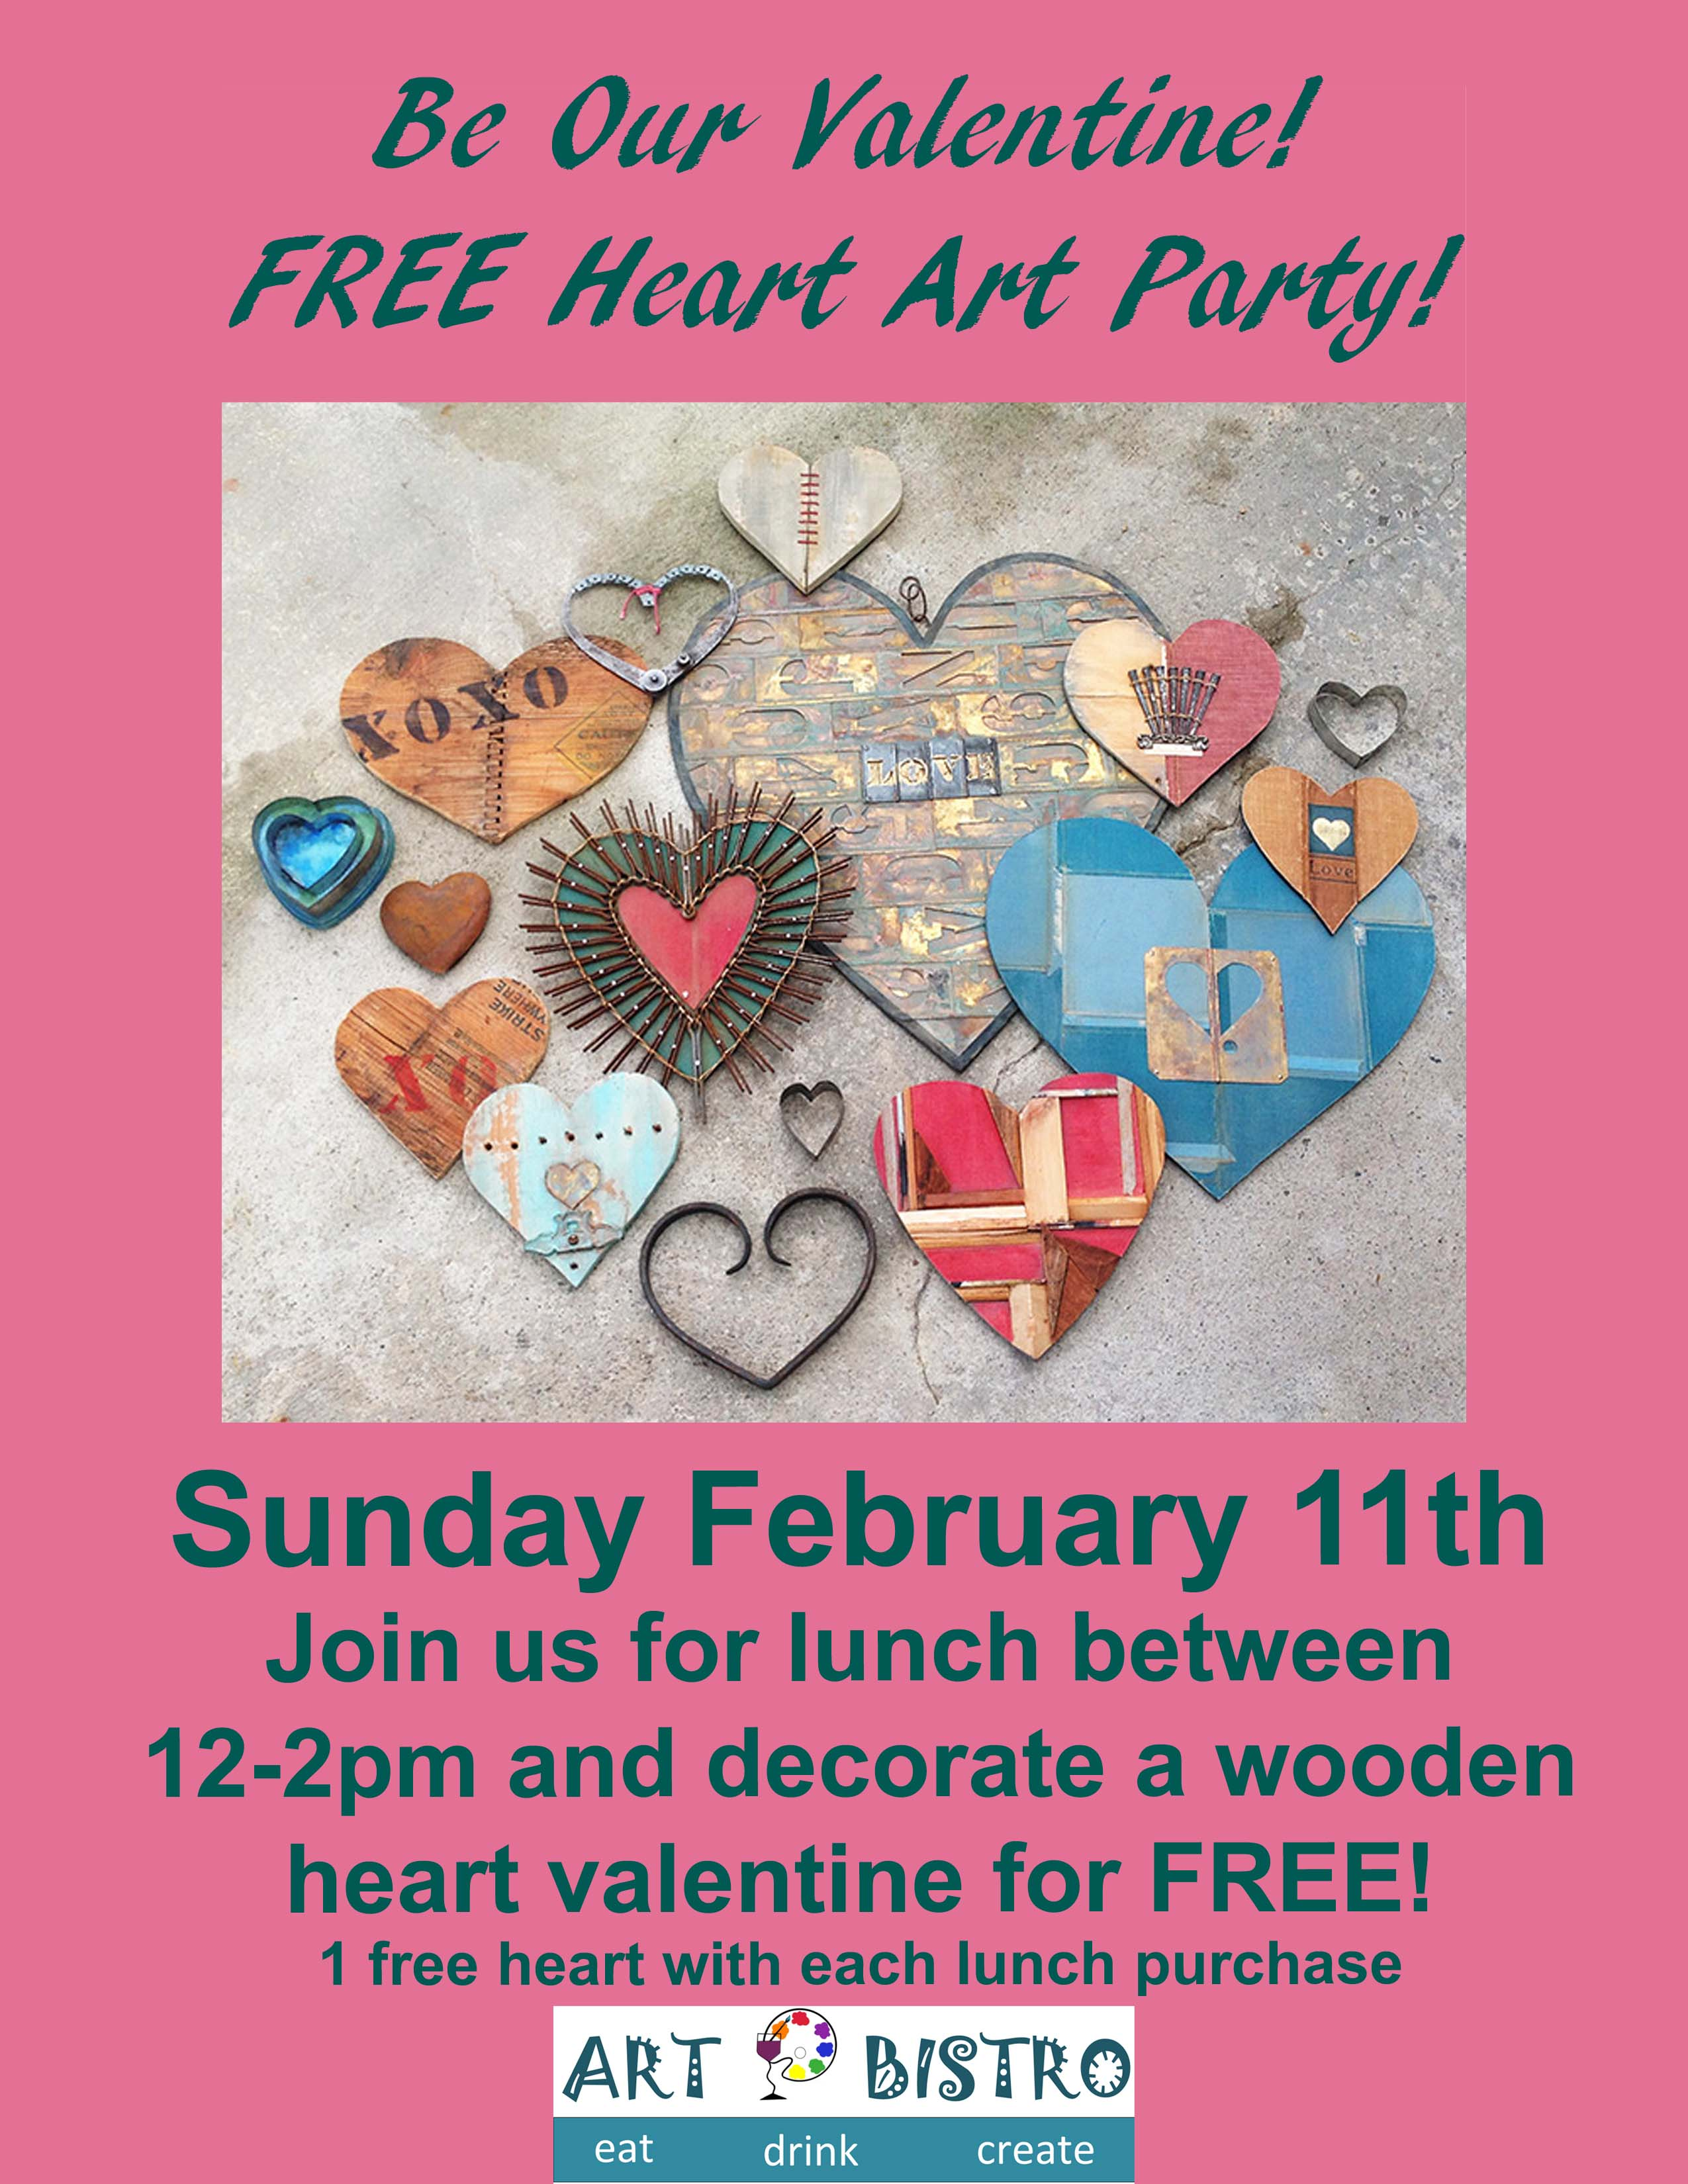 FREE Art Heart Party with lunch purchase 2/11 12-2pm!